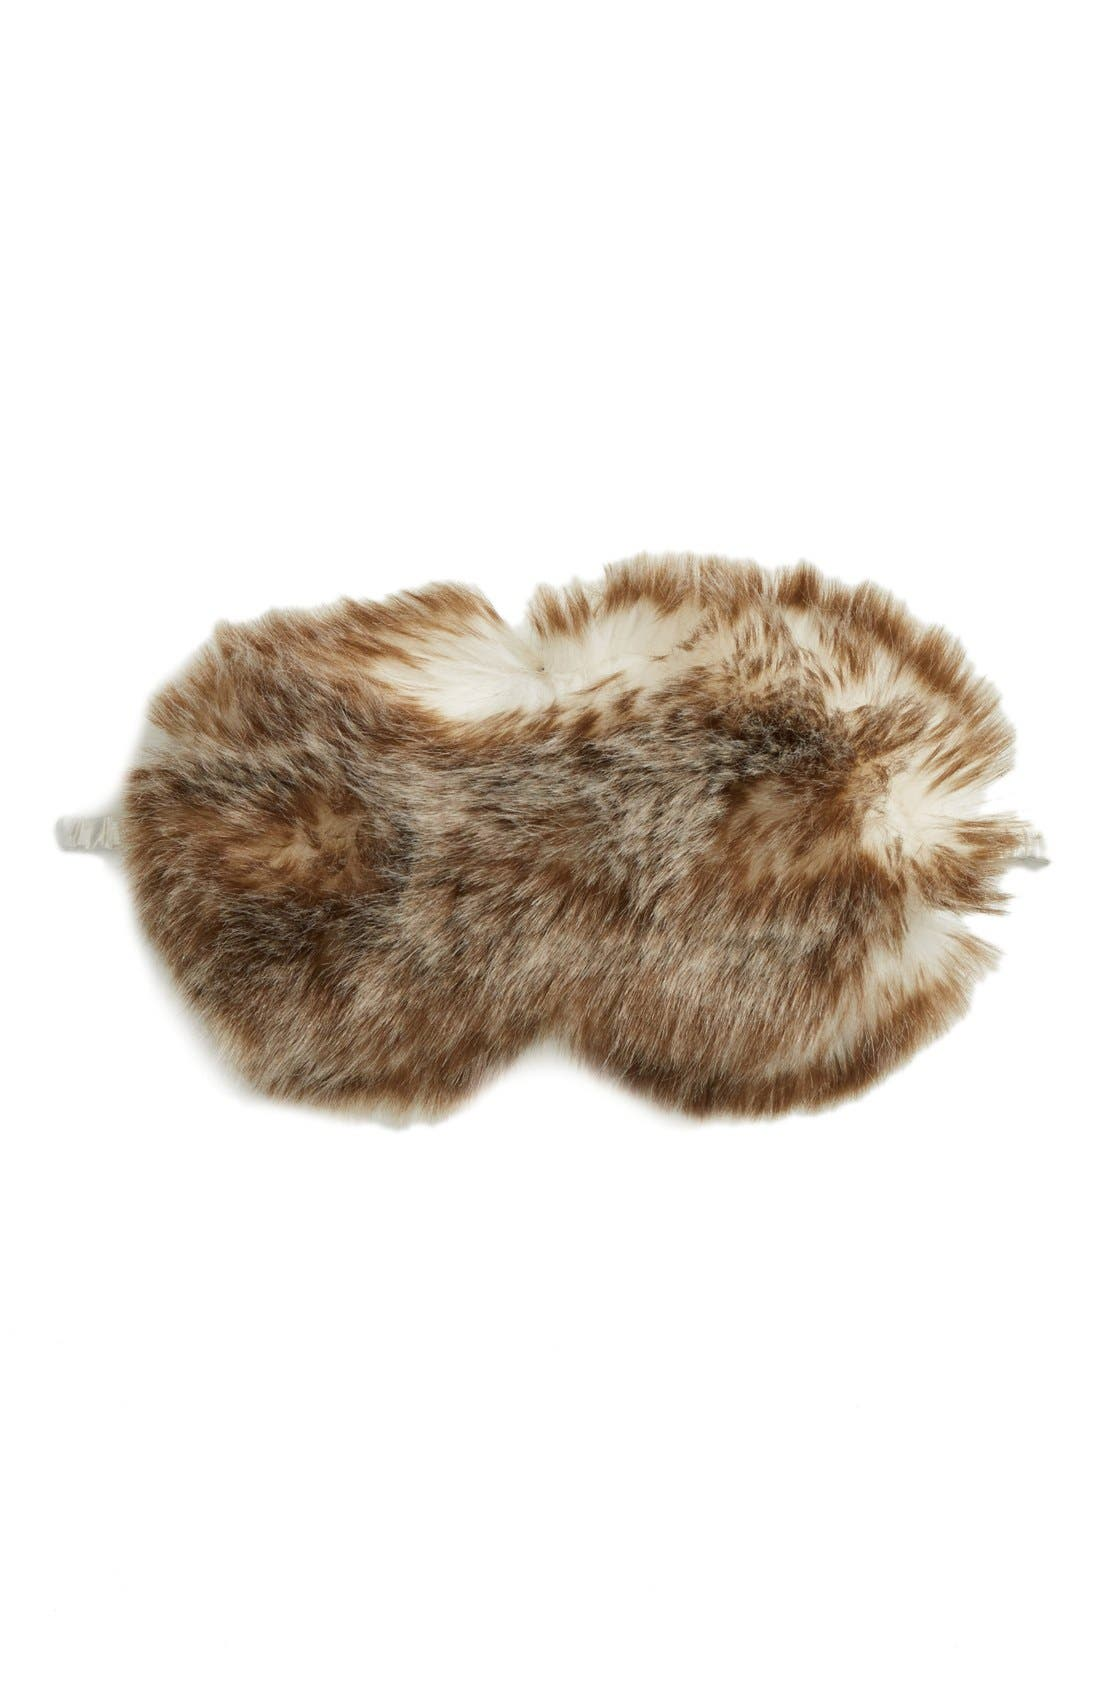 Main Image - Nordstrom Faux Fur Eye Mask